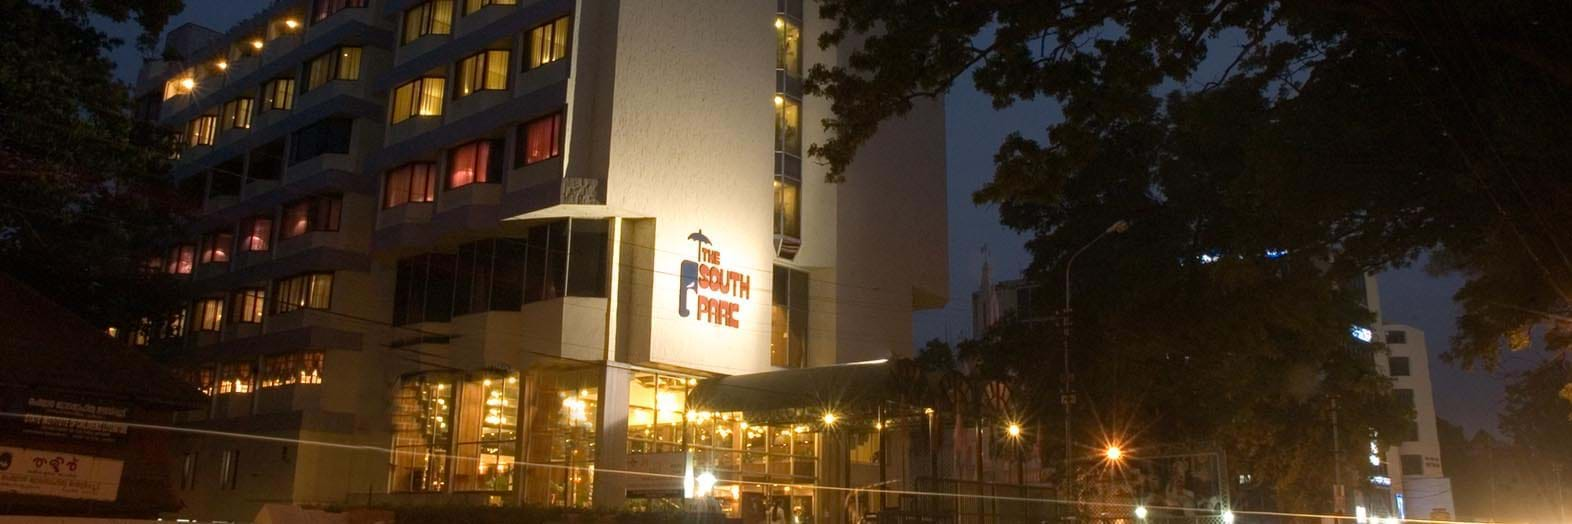 Hotels in Trivandrum  - Fortune Hotel The South Park